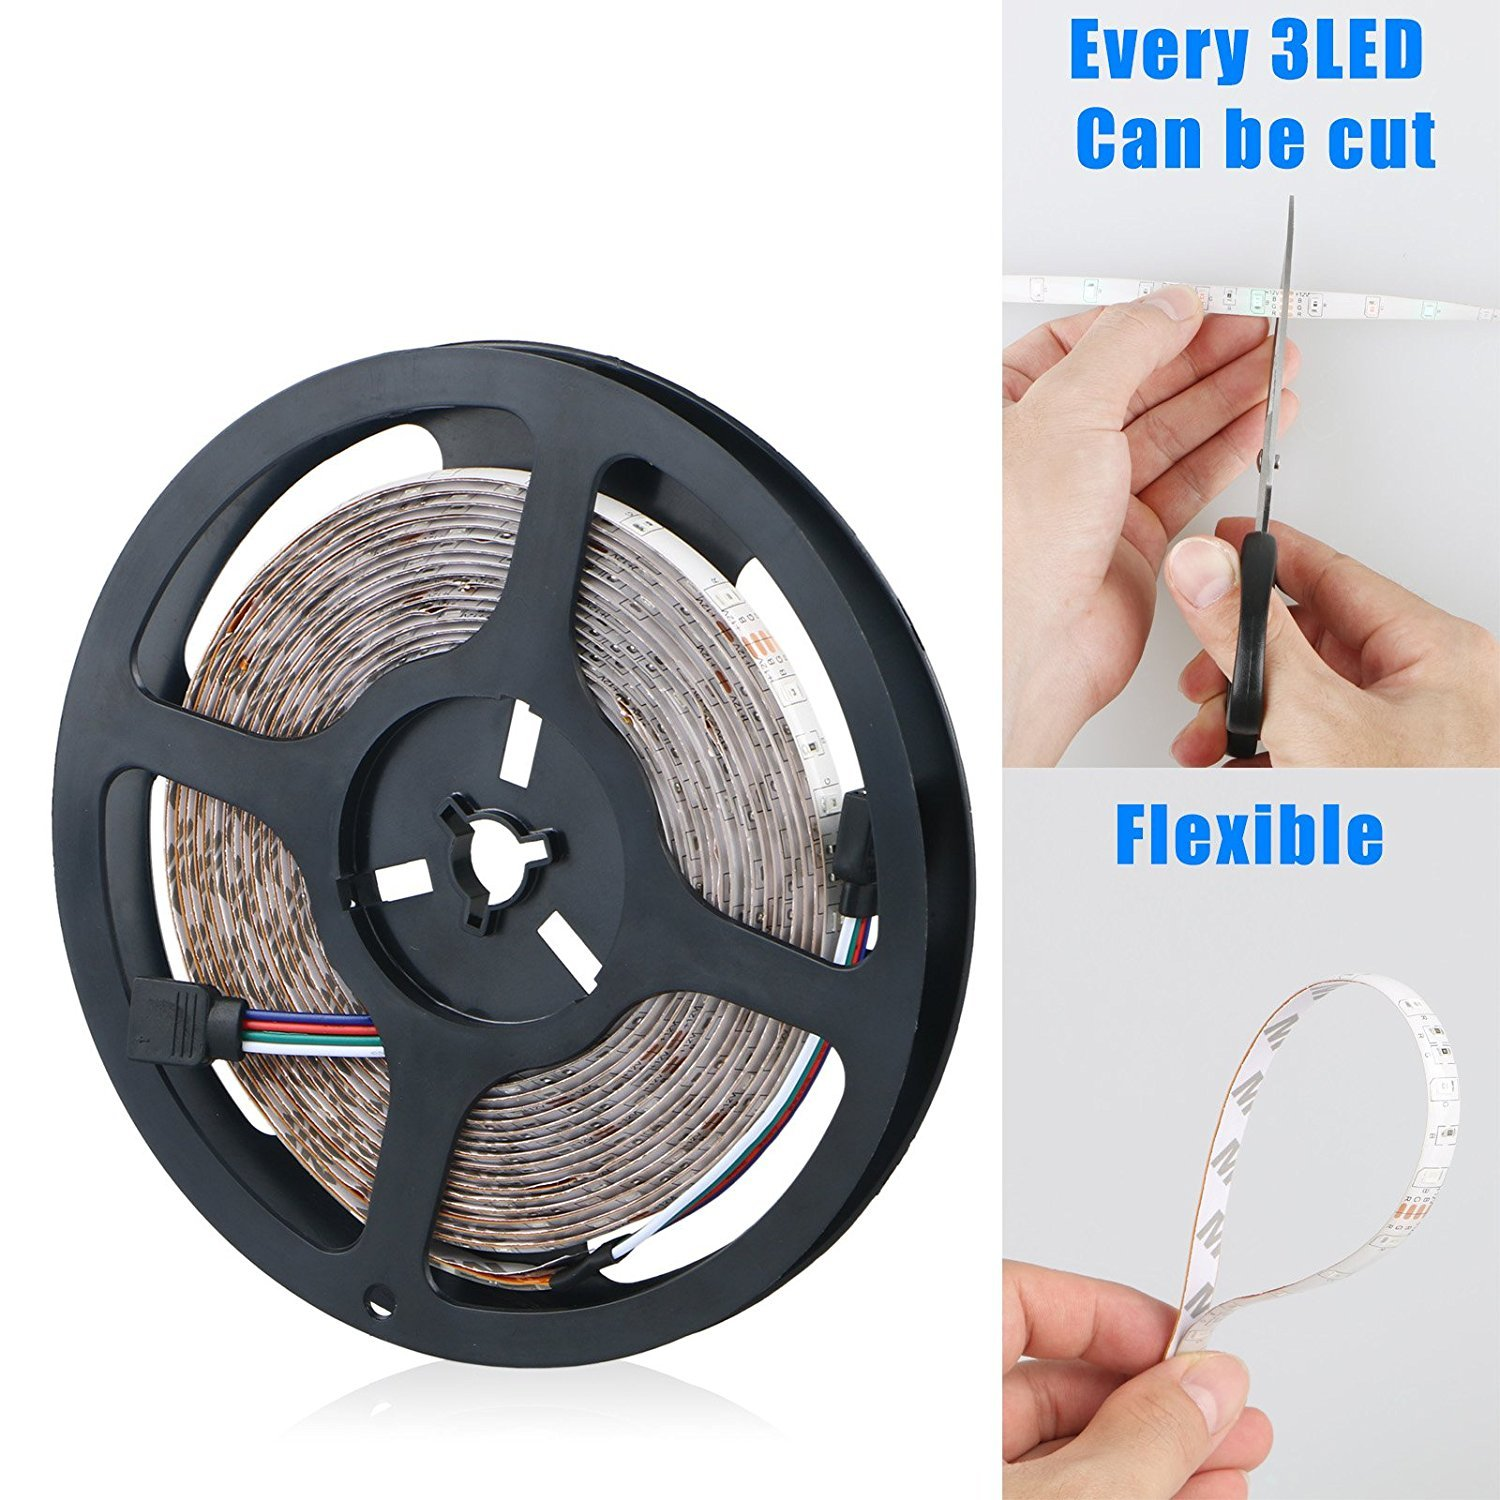 Flexible LED Strip Light Kit Linkstyle 16.4Ft LED Rope Lights 300 LED Tape Light, Color Changing RGB LED Strip Lights & 44Key Remote Controller and 12V Power Supply for DIY Bedroom Home Bar Party by LinkStyle (Image #5)